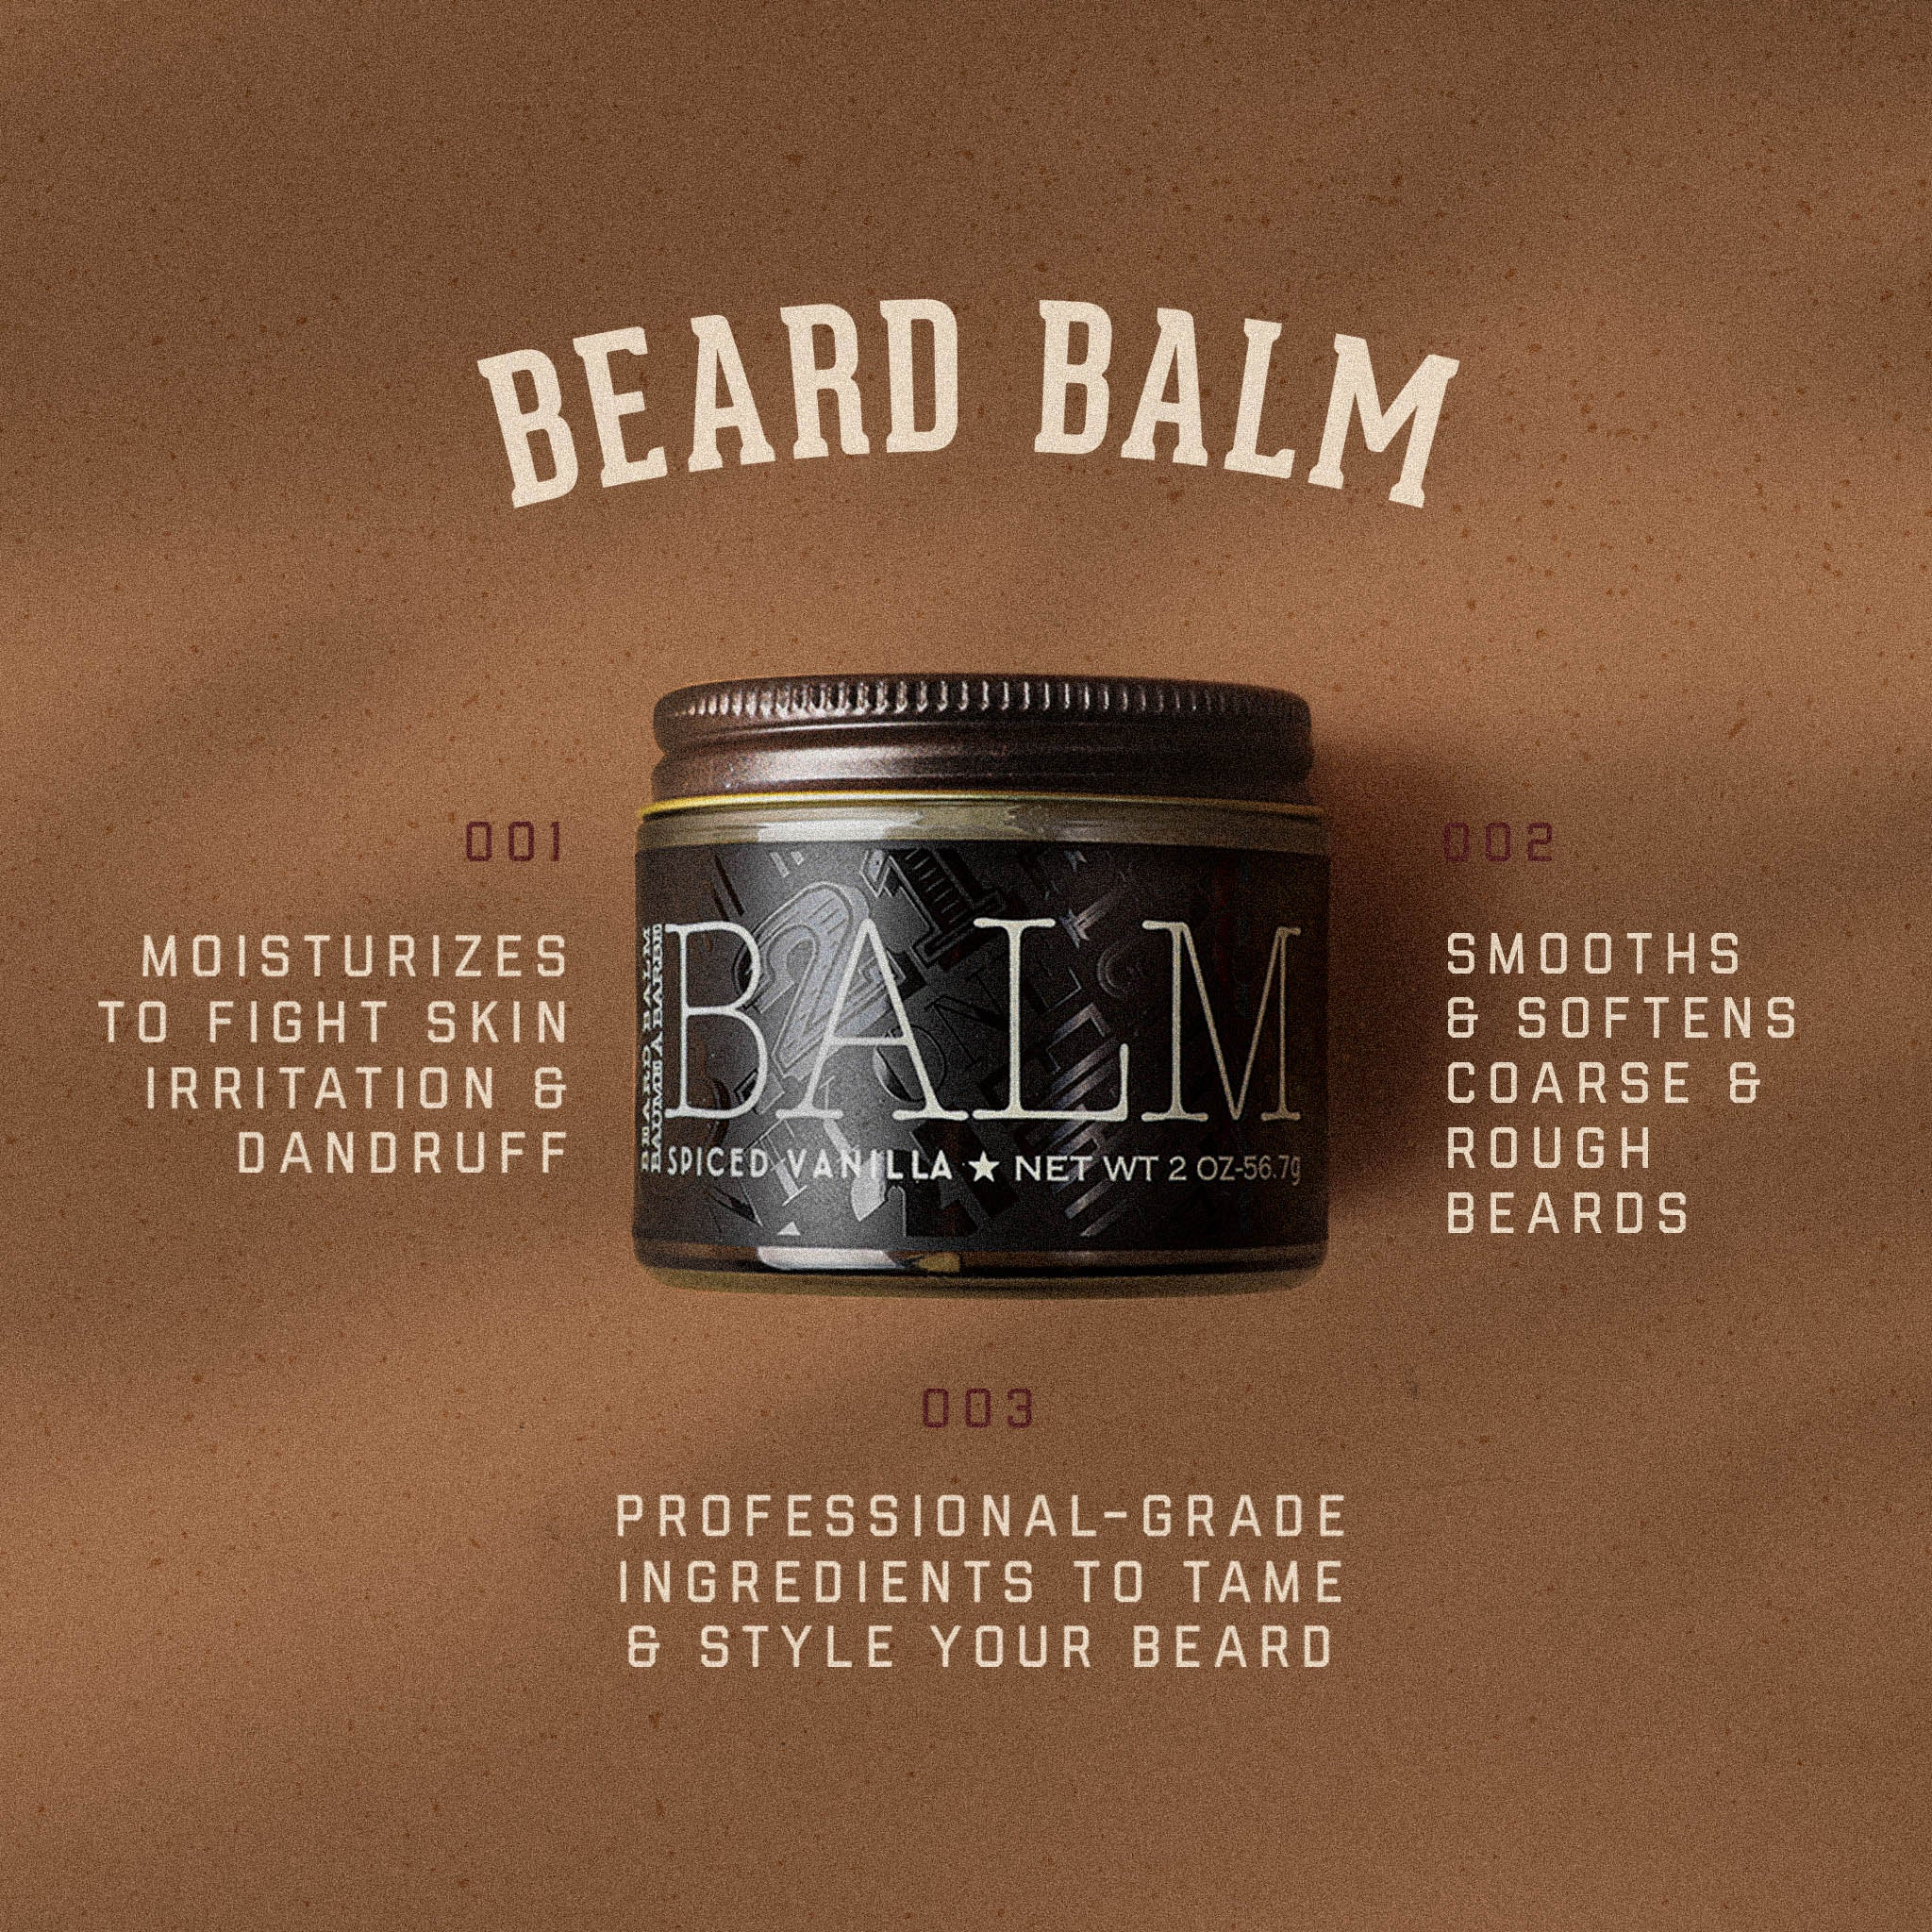 Spiced Vanilla Beard Balm